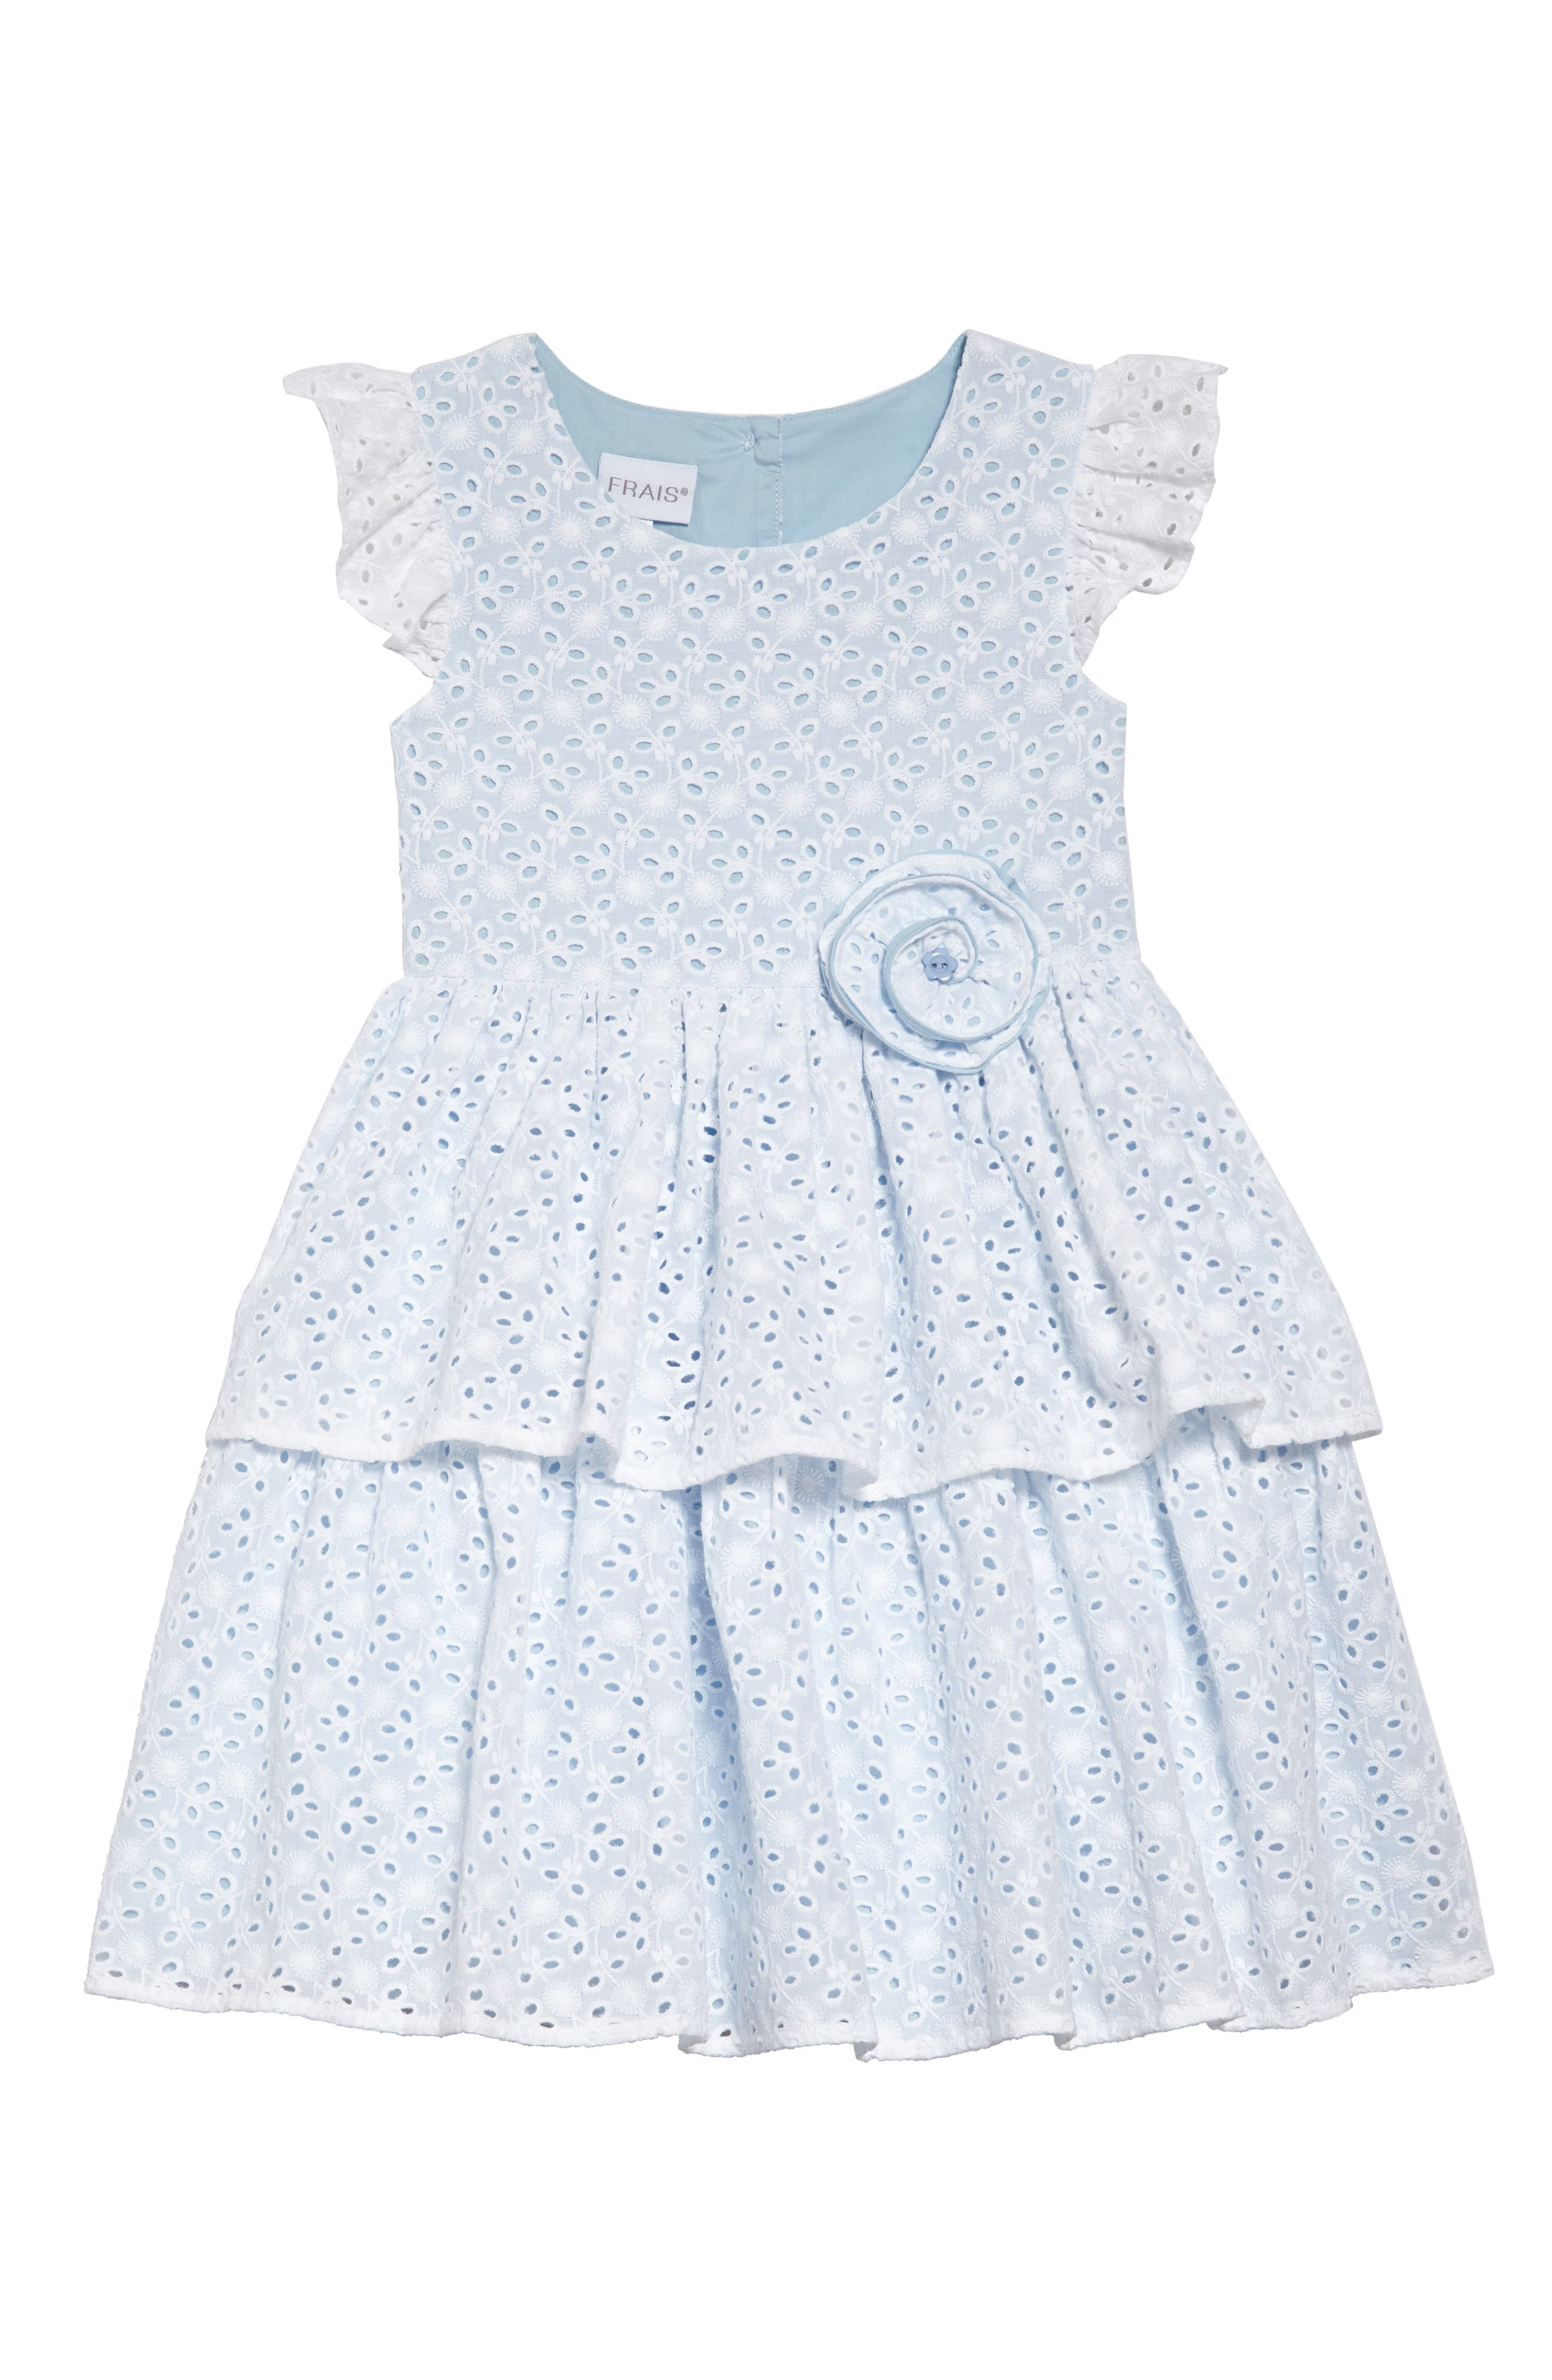 Flutter Sleeve Tiered Eyelet Dress,                             Main thumbnail 1, color,                             White